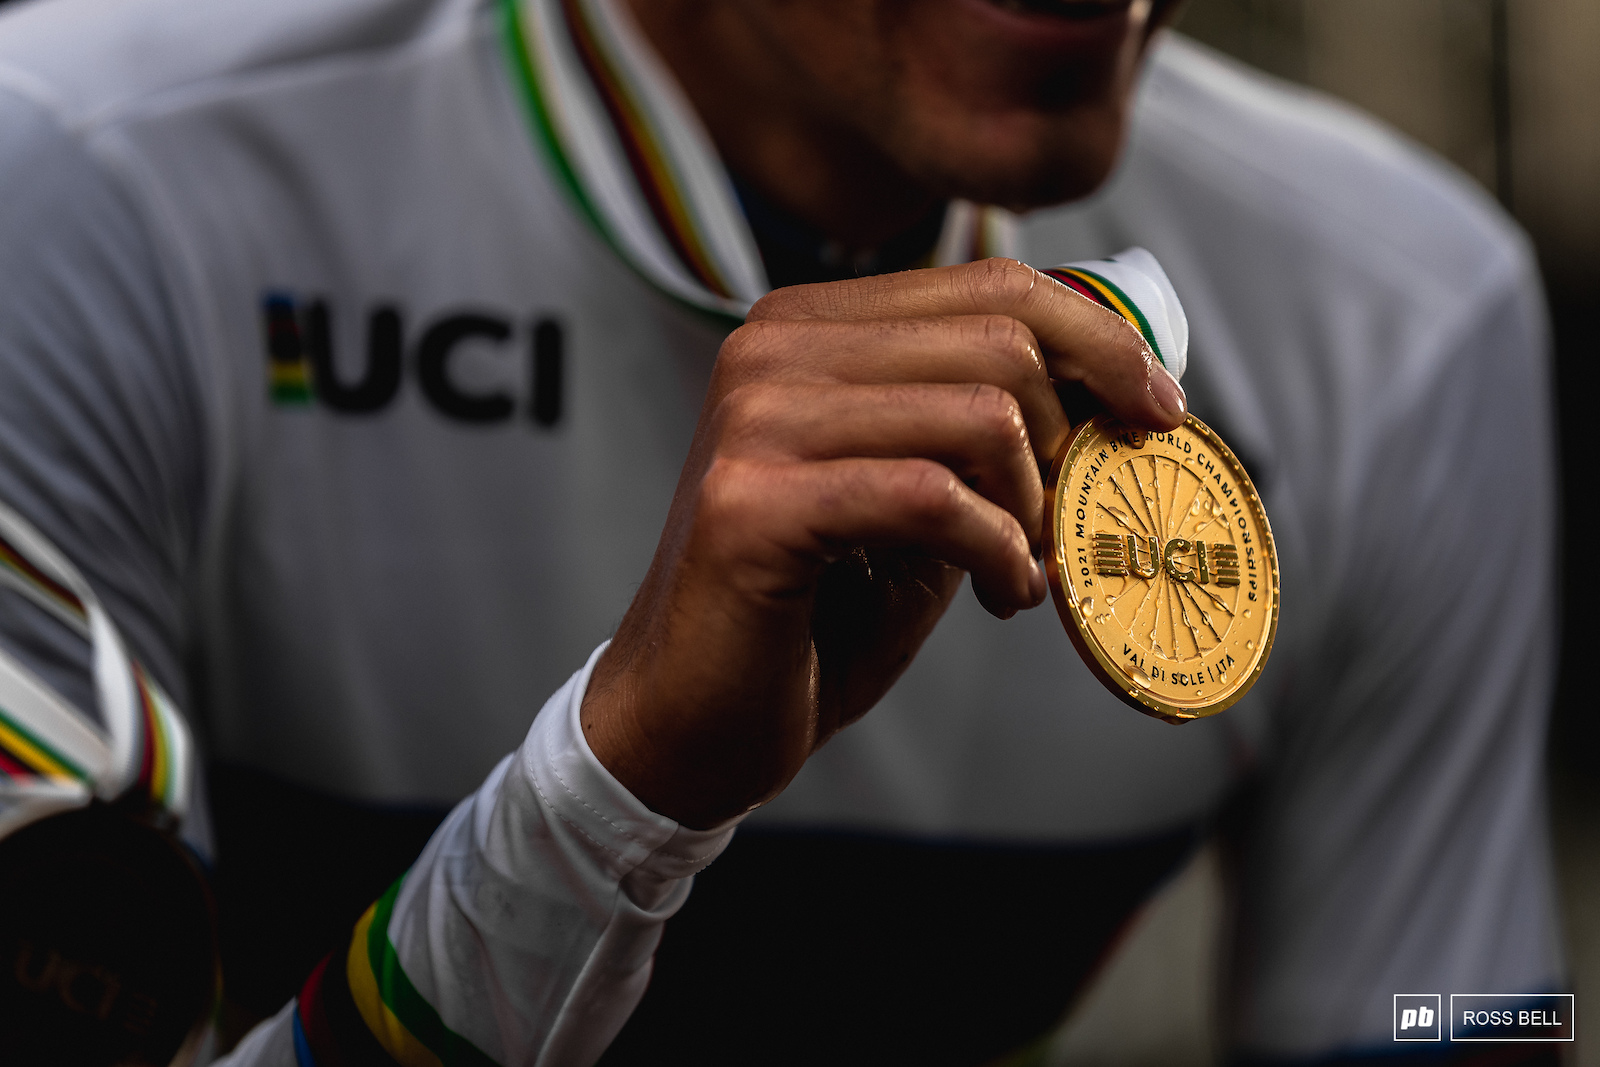 There s plenty more gold medals still to be handed out in Val di Sole so be sure to check in over the next few days.